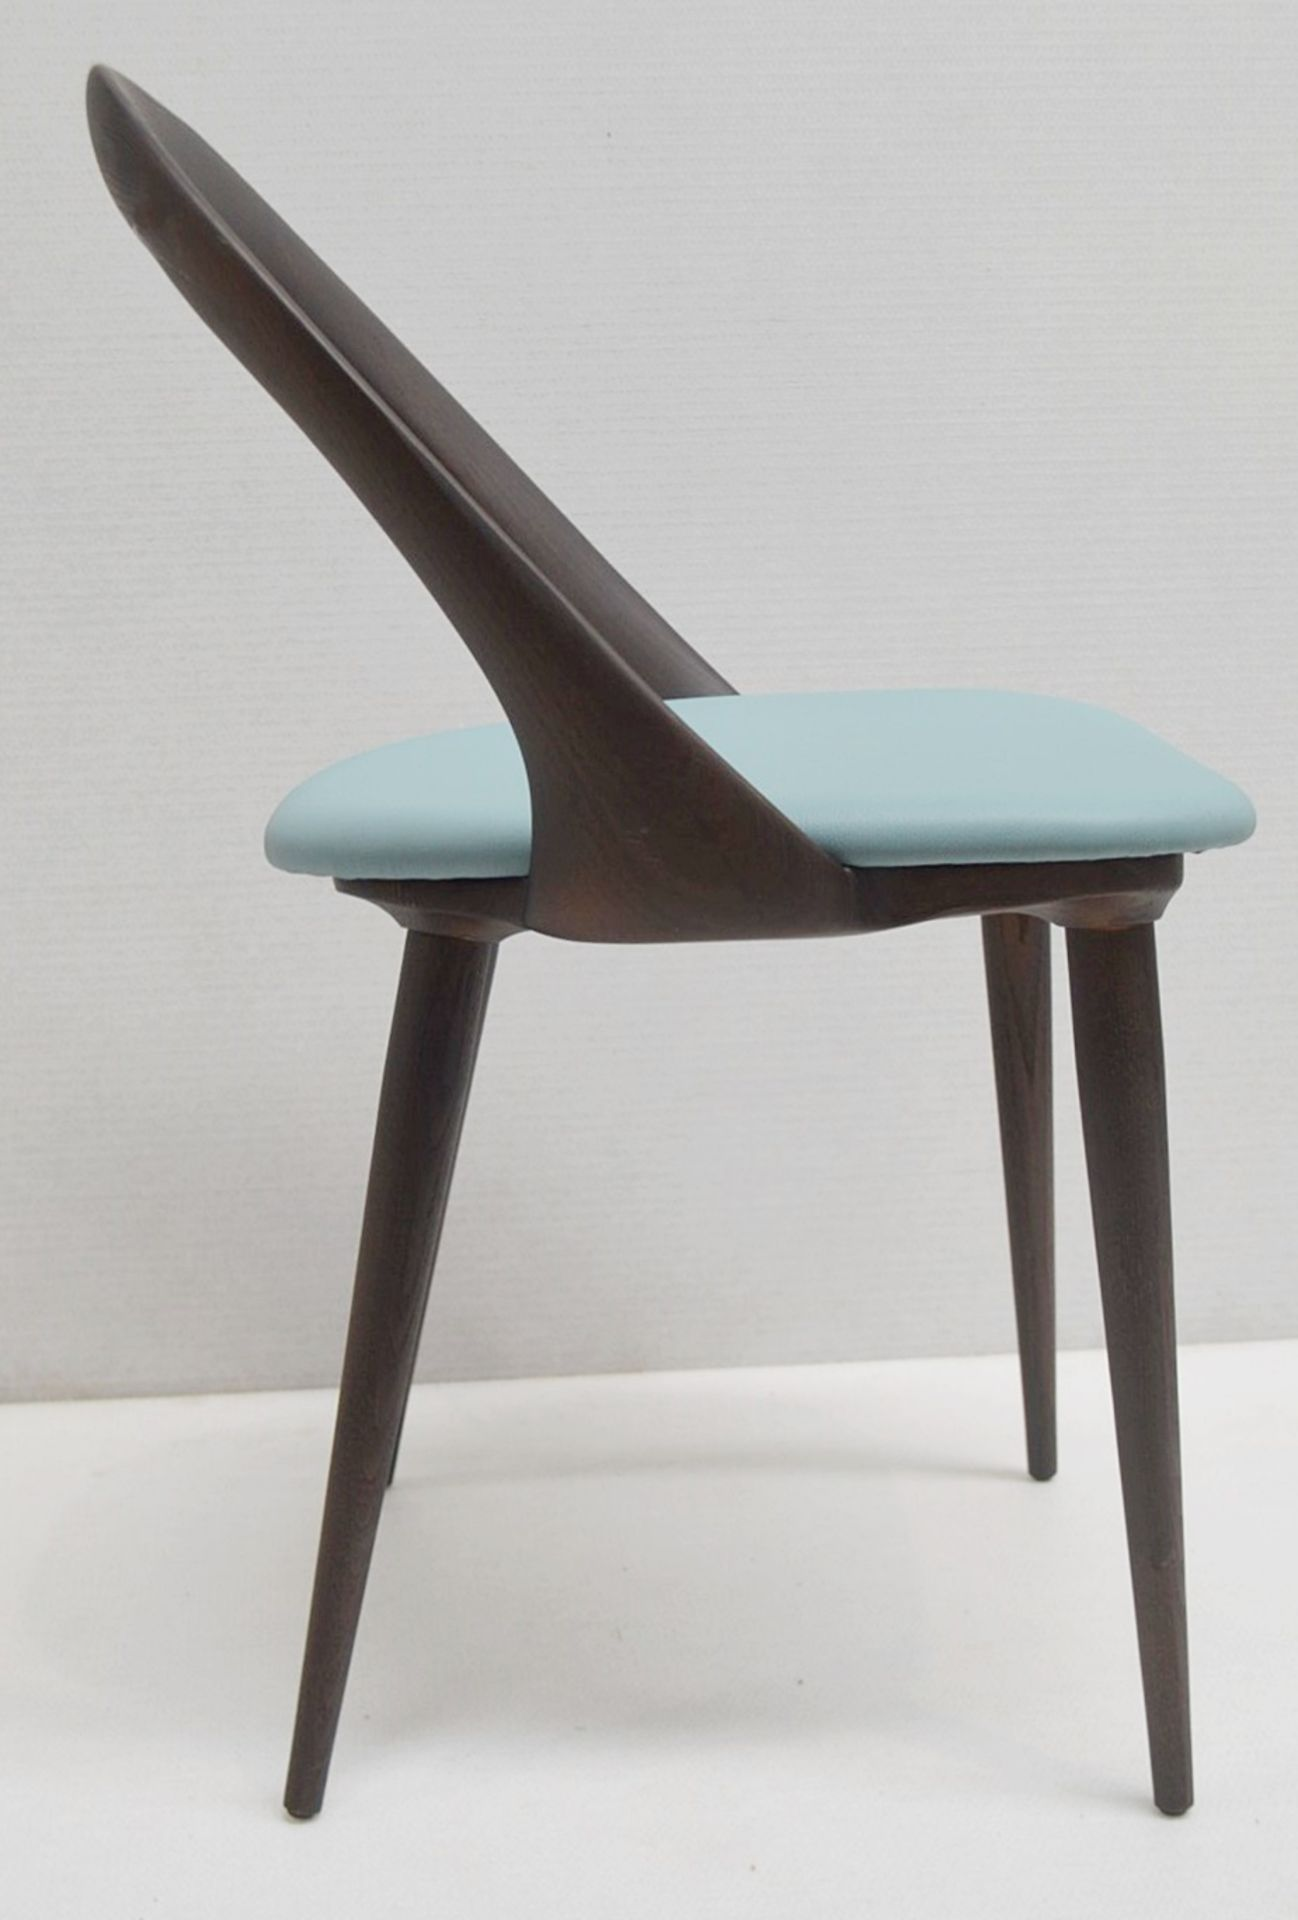 Set Of 4 x PORADA 'Ester' Italian Designer Dining Chairs Featuring Leather Seats - RRP £5,120 - Image 4 of 11